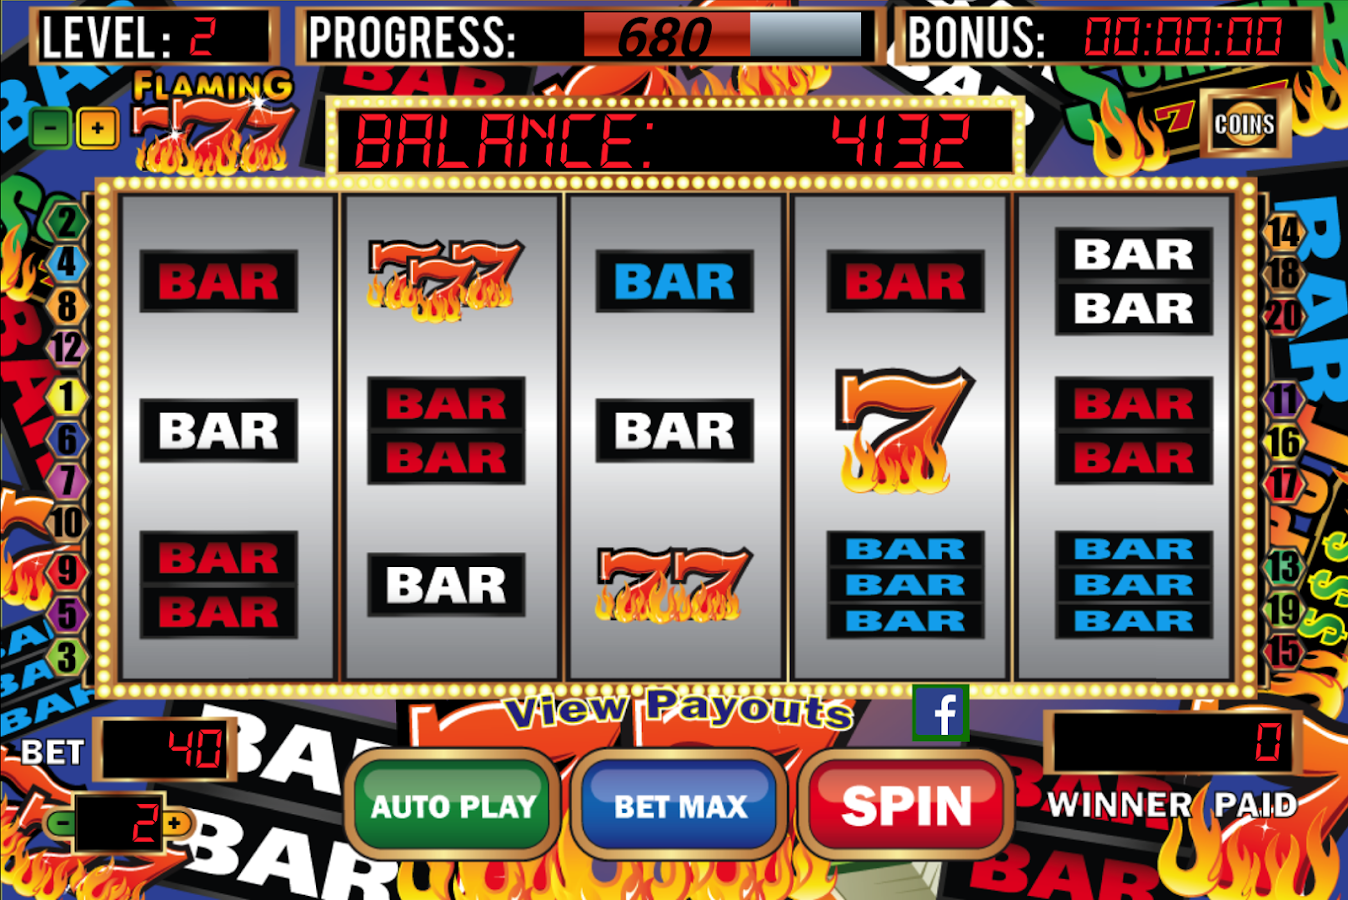 online casino slot machines casino online games